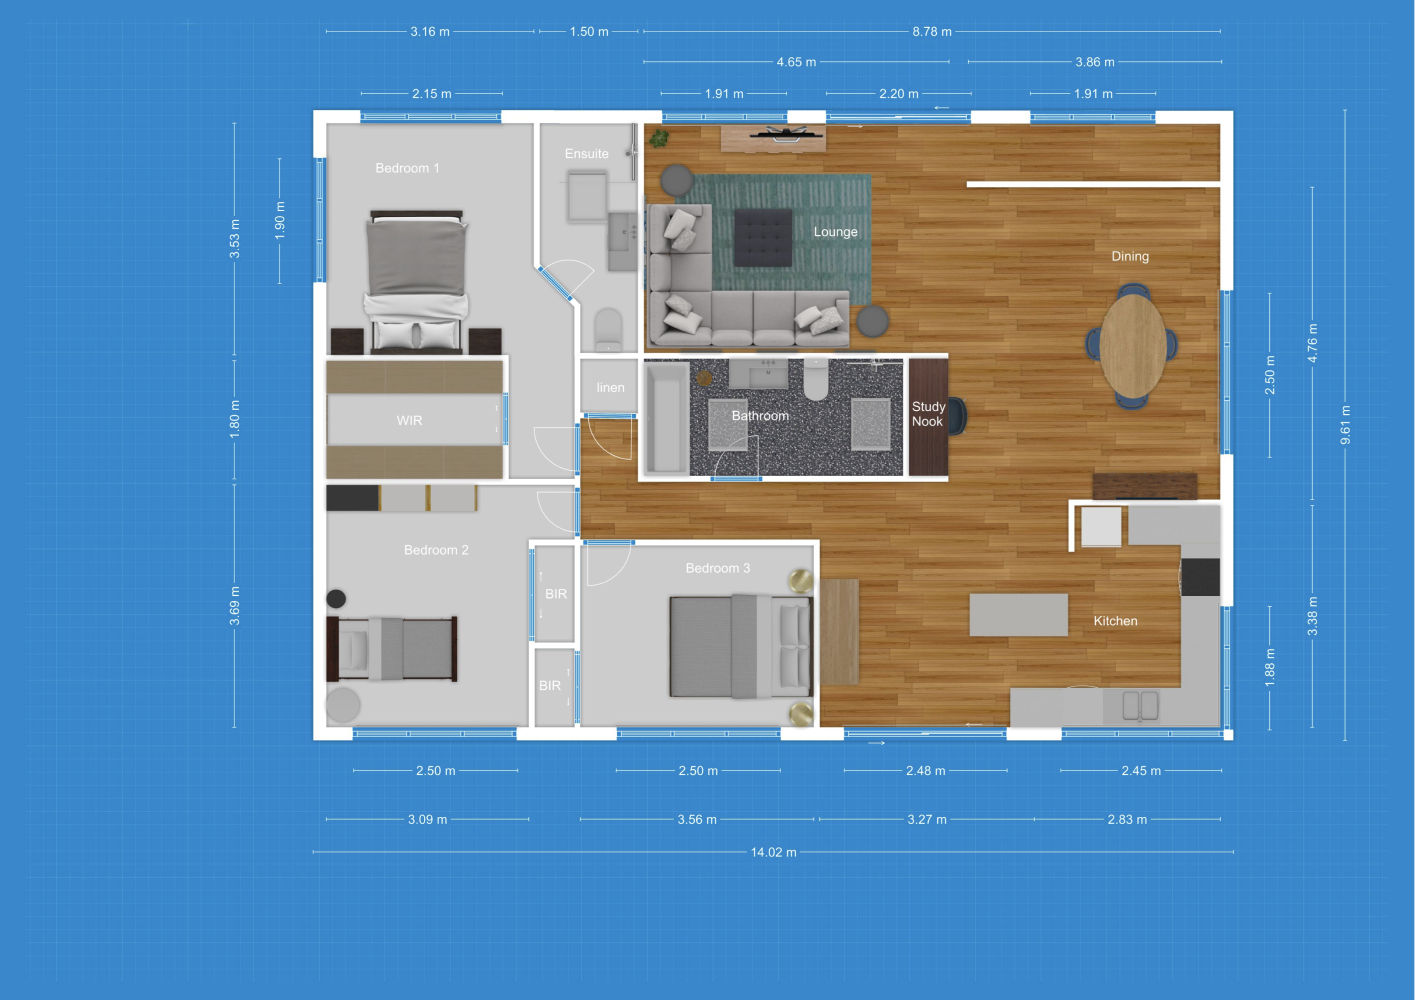 2d Floor Plan In Blueprint Mode Created With Floorplanner Com Floor Plans Create Floor Plan Office Space